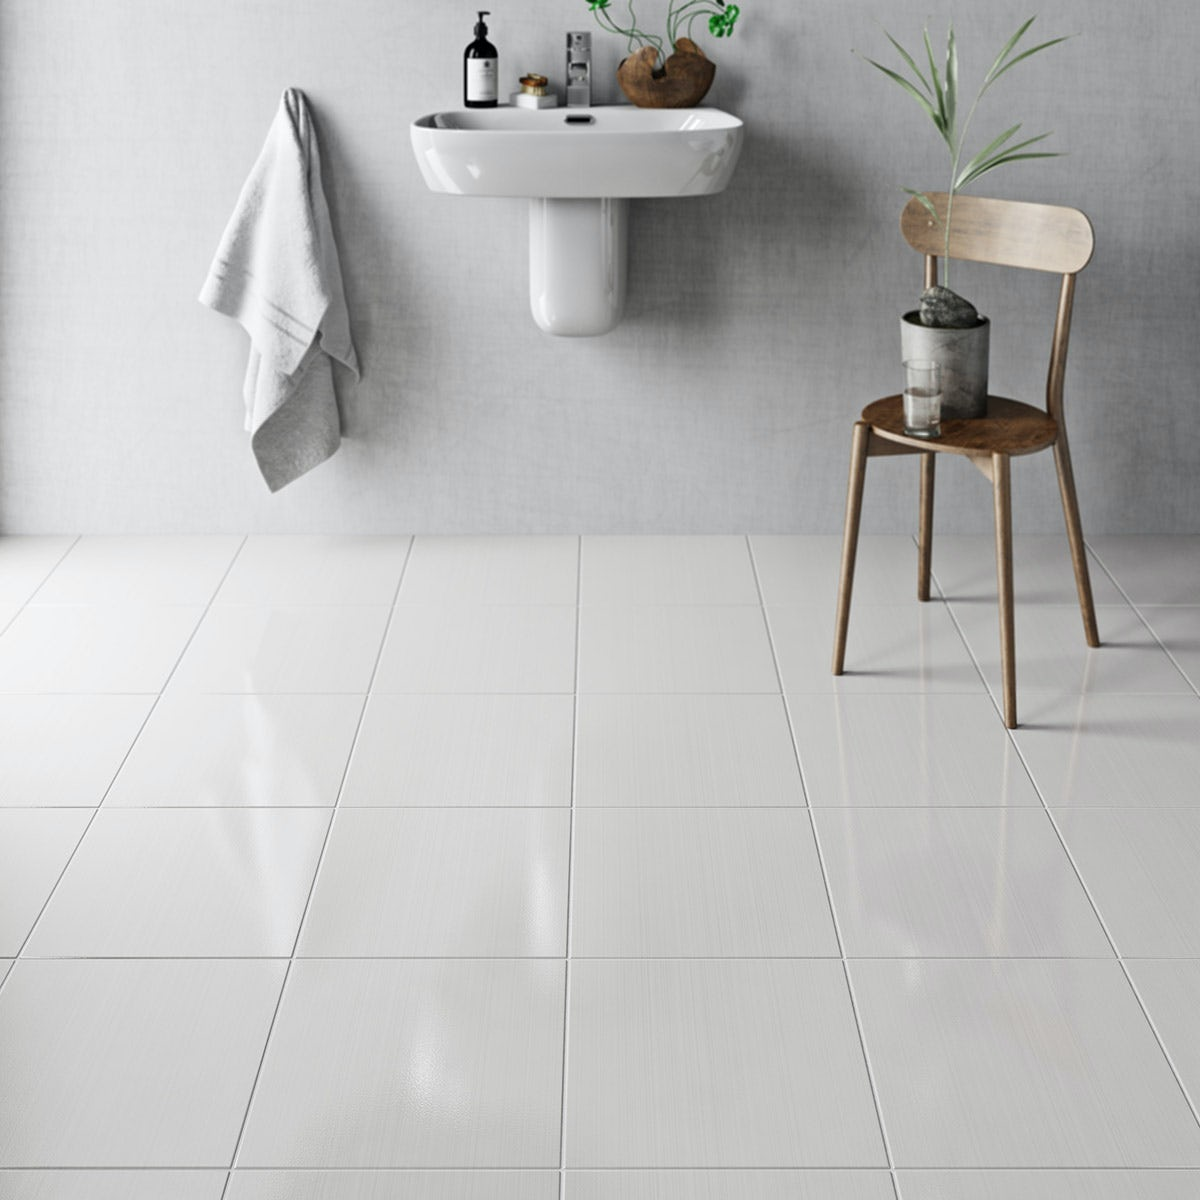 British ceramic tile linear white gloss tile 331mm x 331mm british ceramic tile linear white gloss tile 331mm x 331mm dailygadgetfo Images